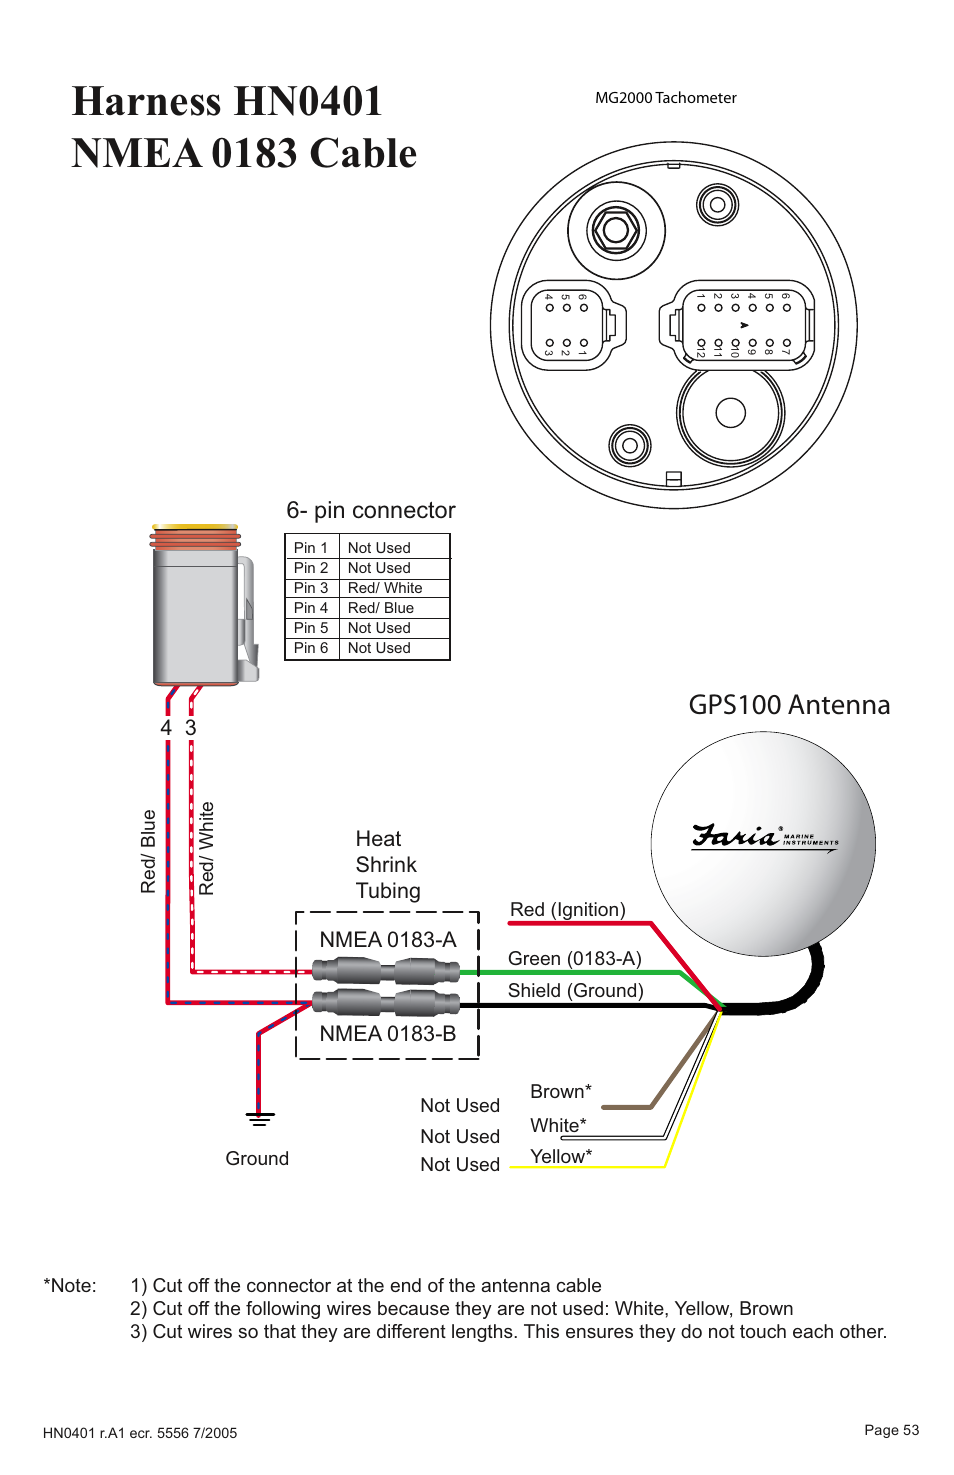 Gps100 antenna, Pin connector, Heat shrink tubing | Faria Instruments  SMARTCRAFT MG2000 User Manual | Page 59 / 60